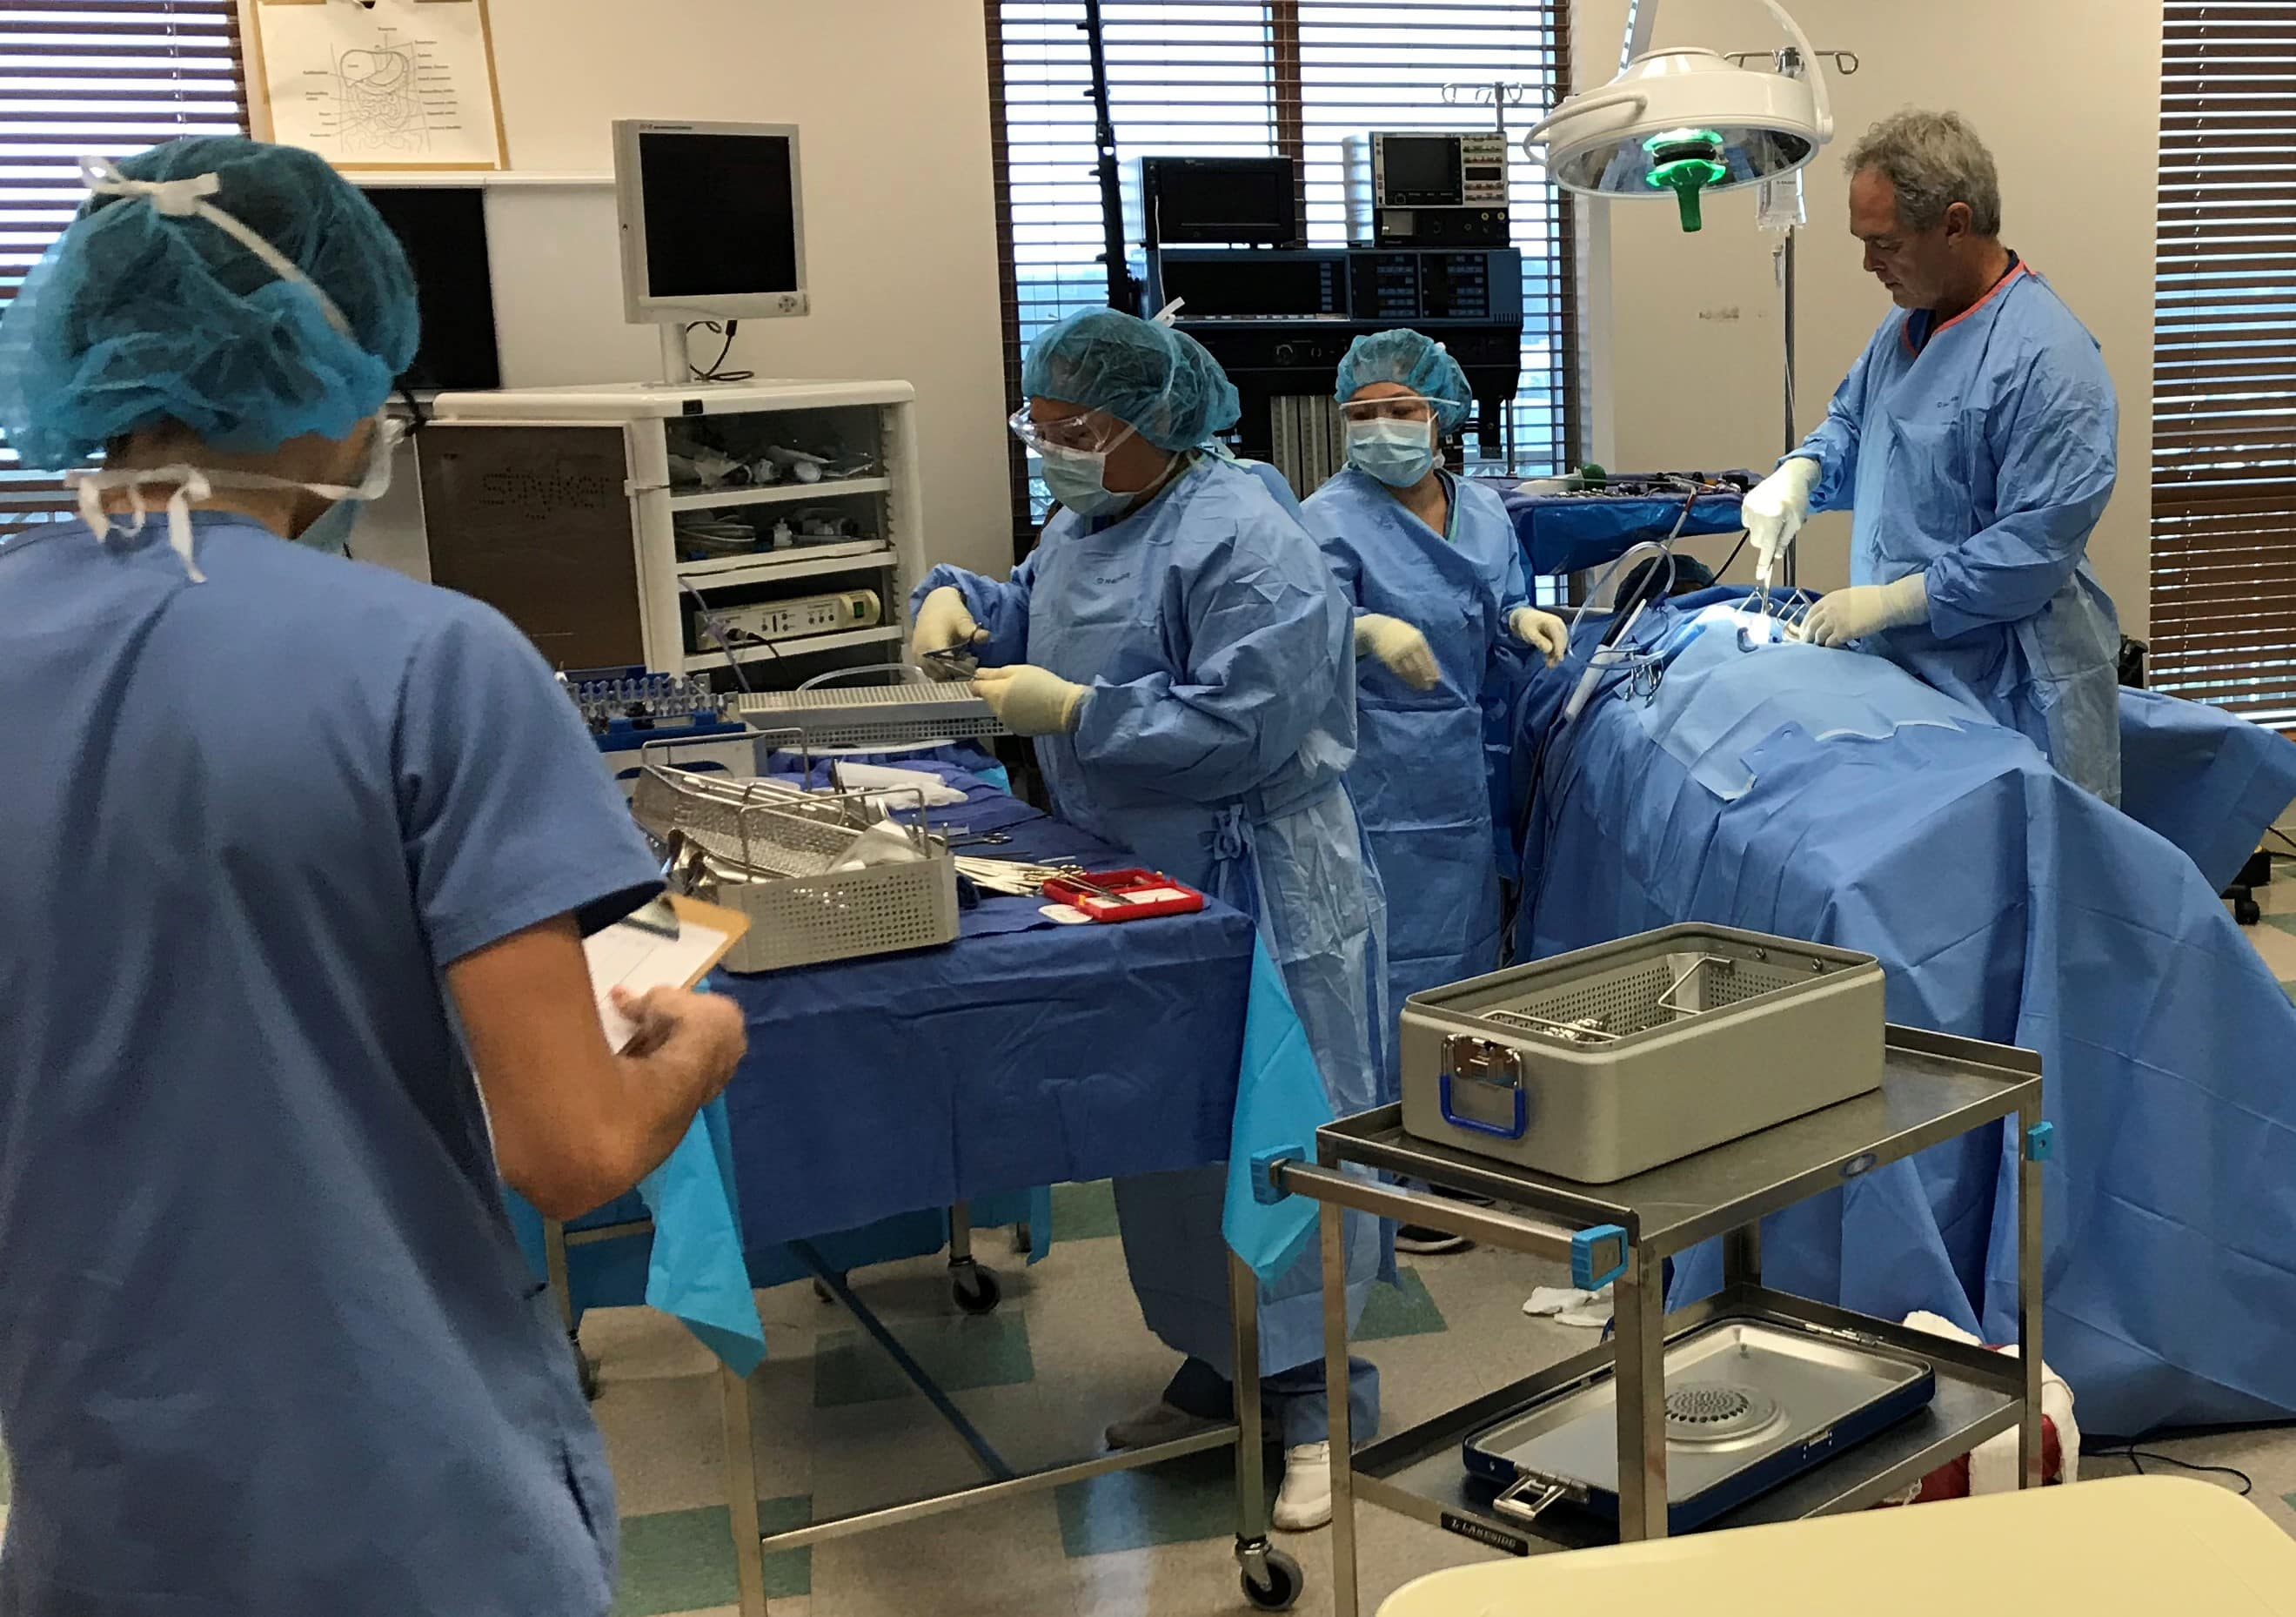 Surgical Technology Lab Provides Great Training for Operating Room Experience